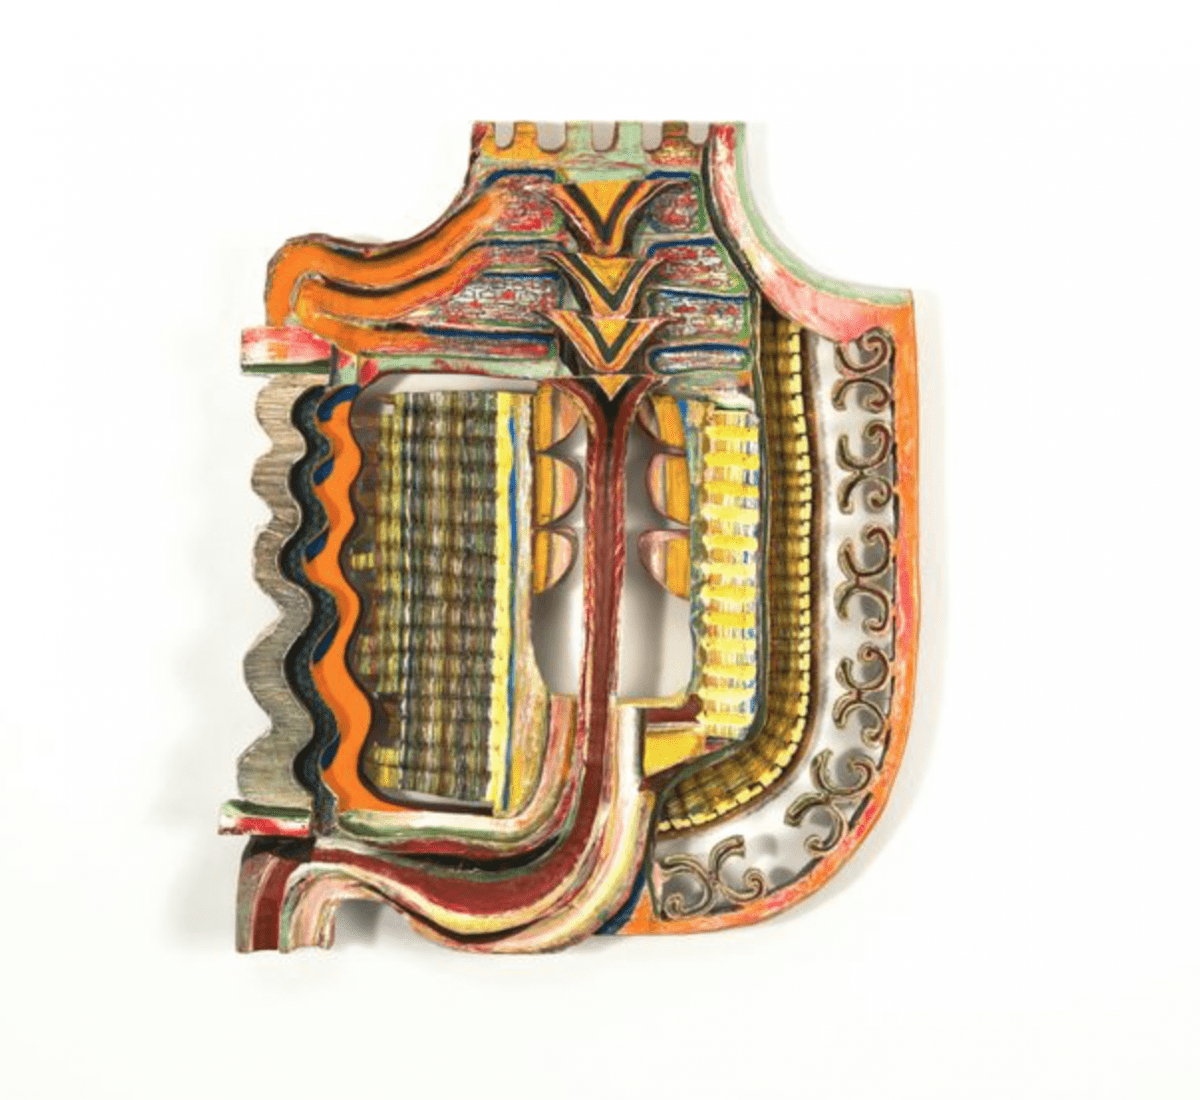 """Becca Lowry, Call Me King,  mixed media on carved wood, 22.5"""" x 18.25"""" x 3.25,"""" 2015."""